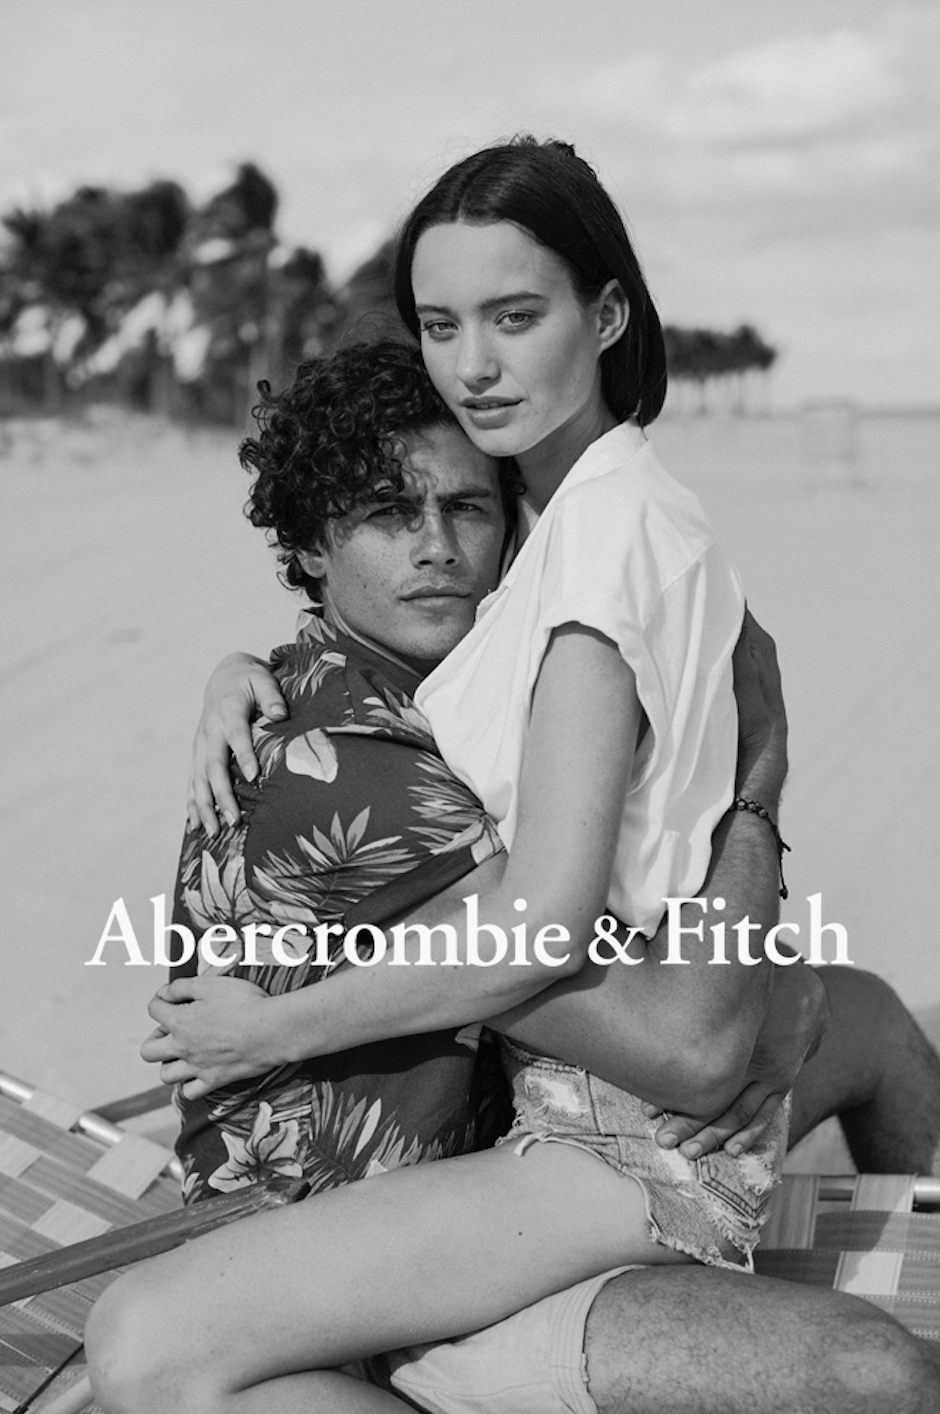 A & F / Makeup by Danielle Decker & Hair by Tara Jean